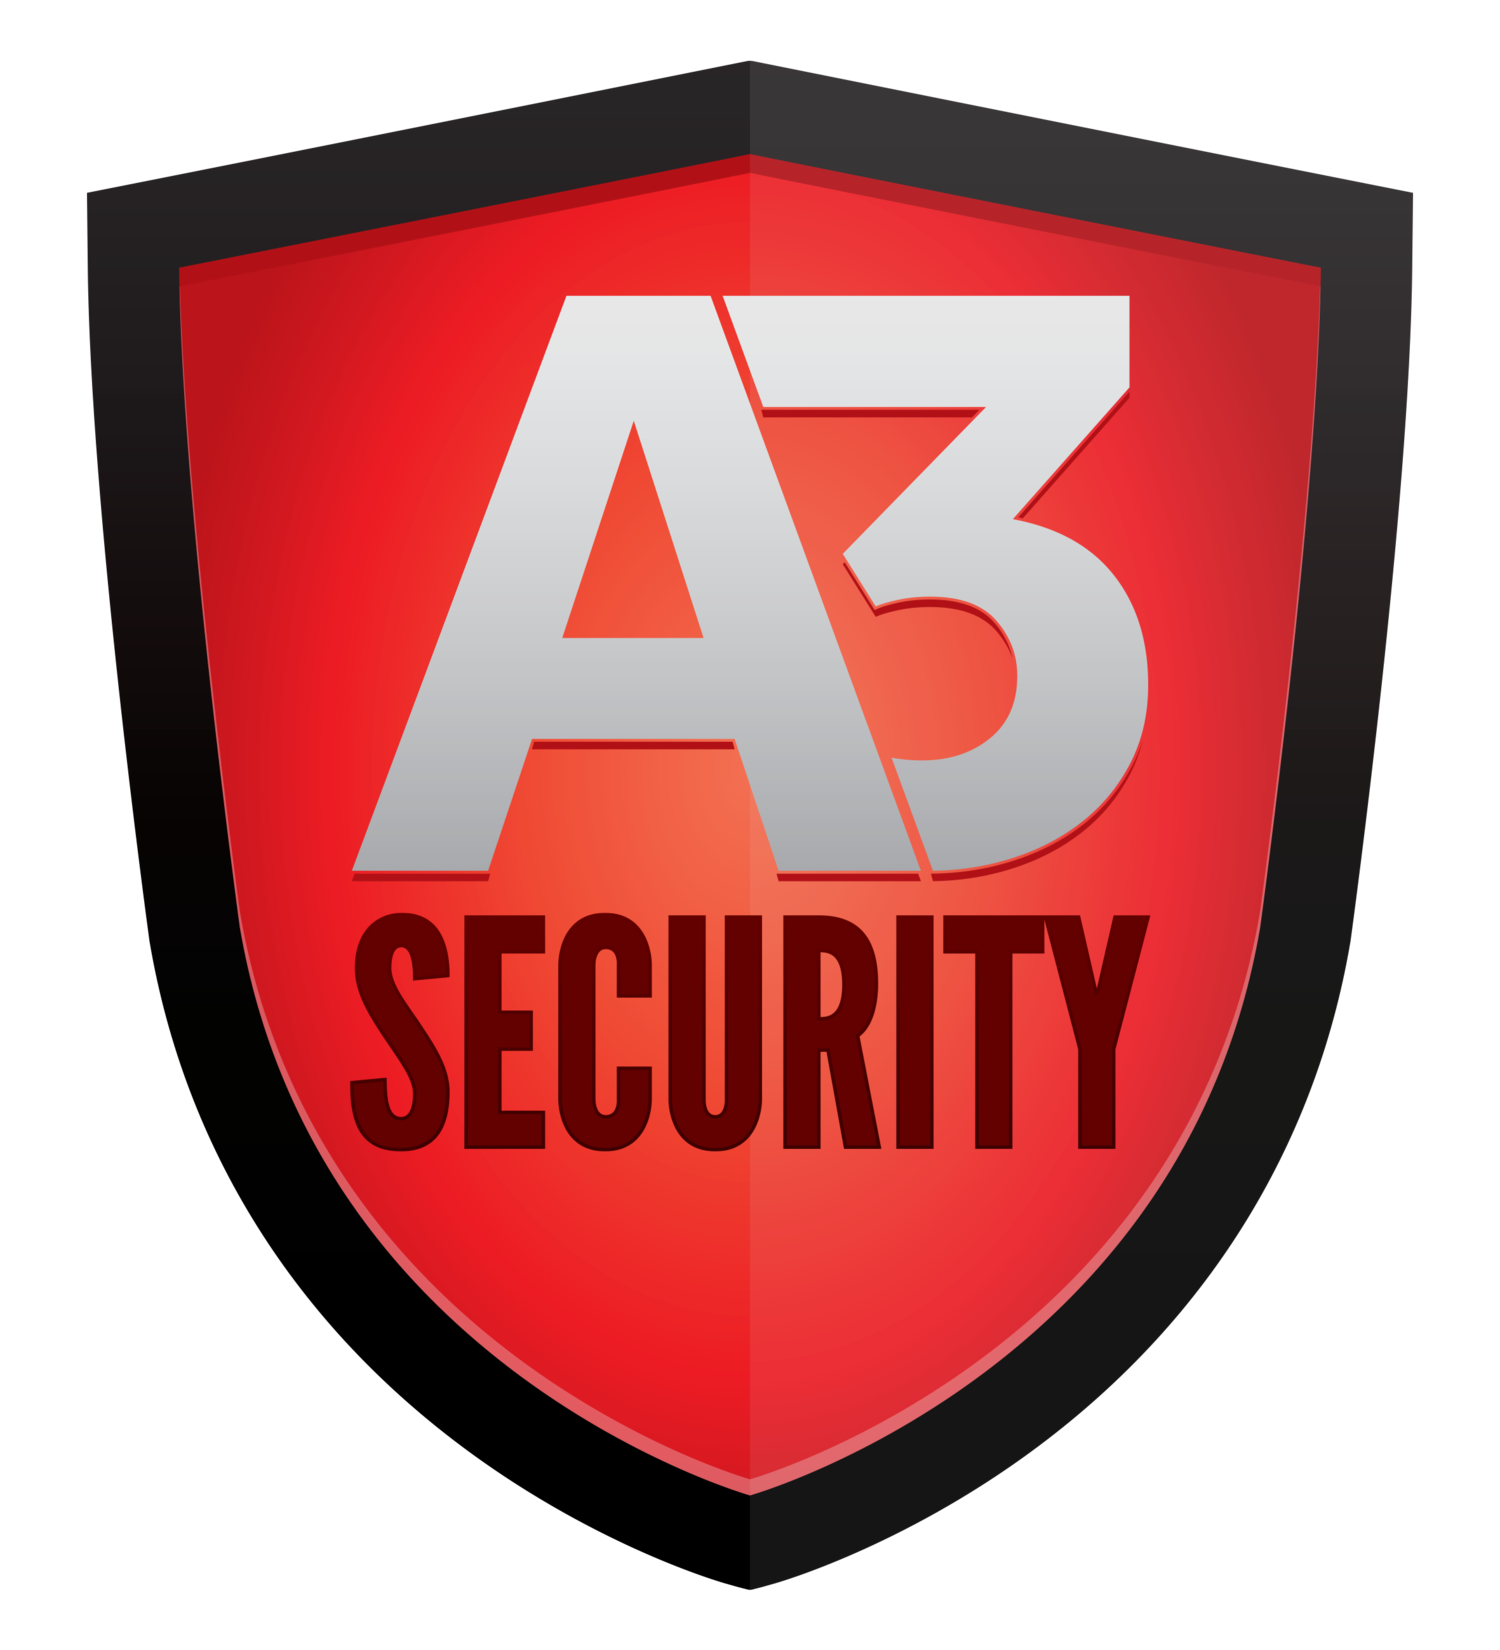 A3 Security